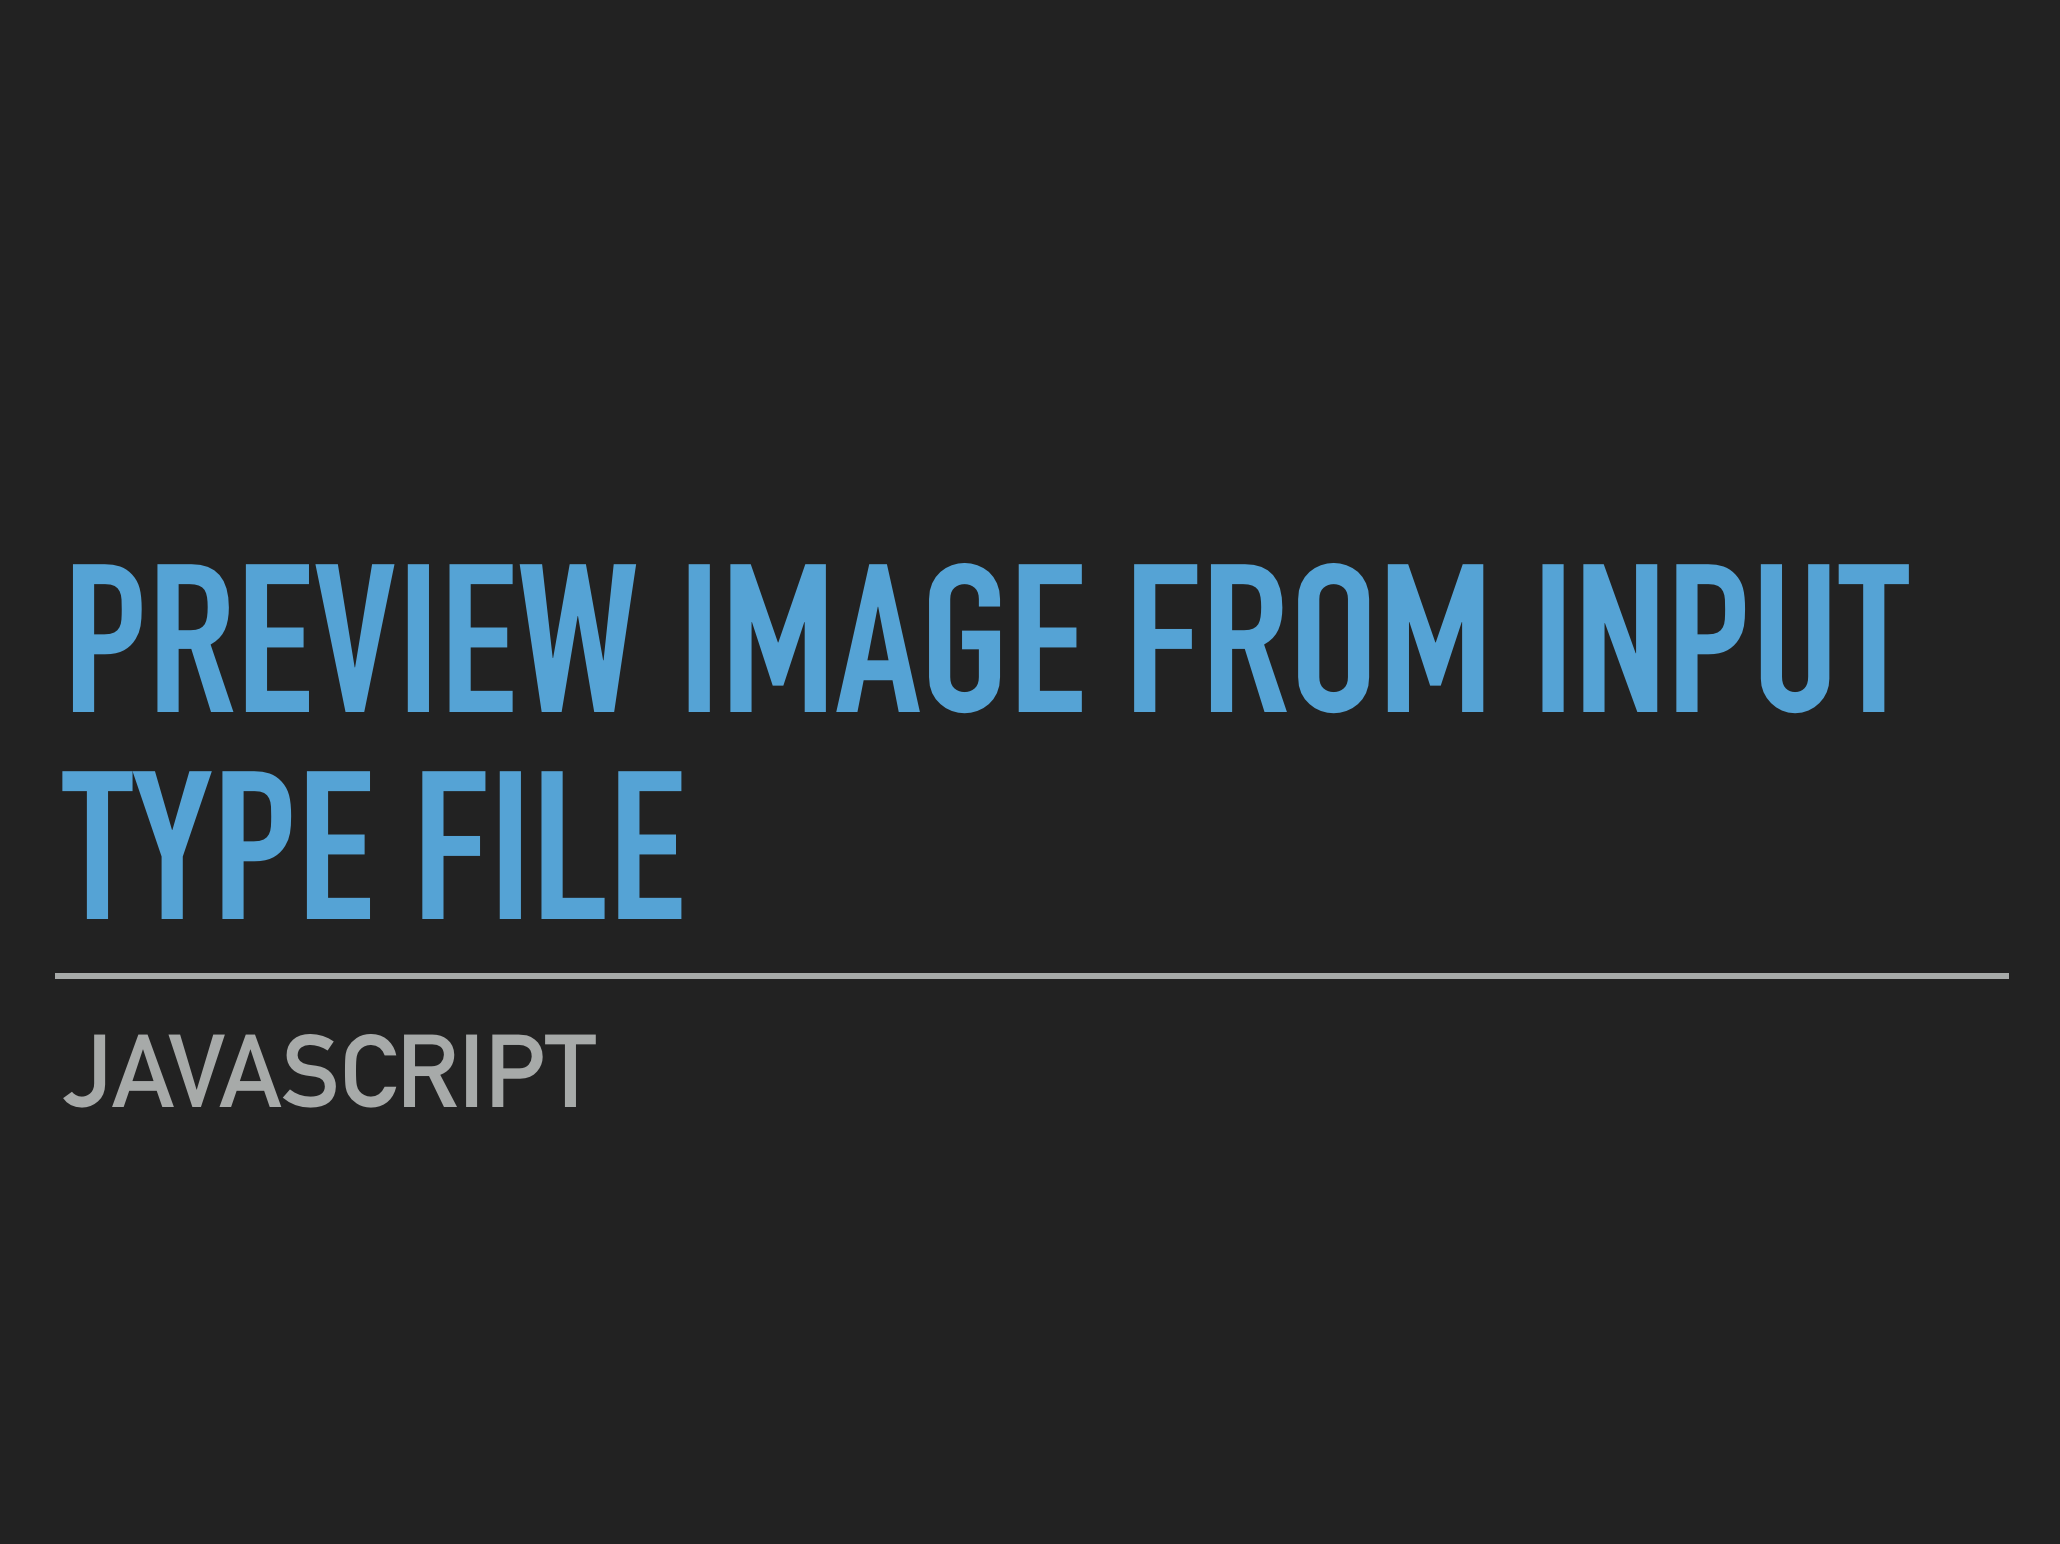 Javascript - Preview image from input type file before upload